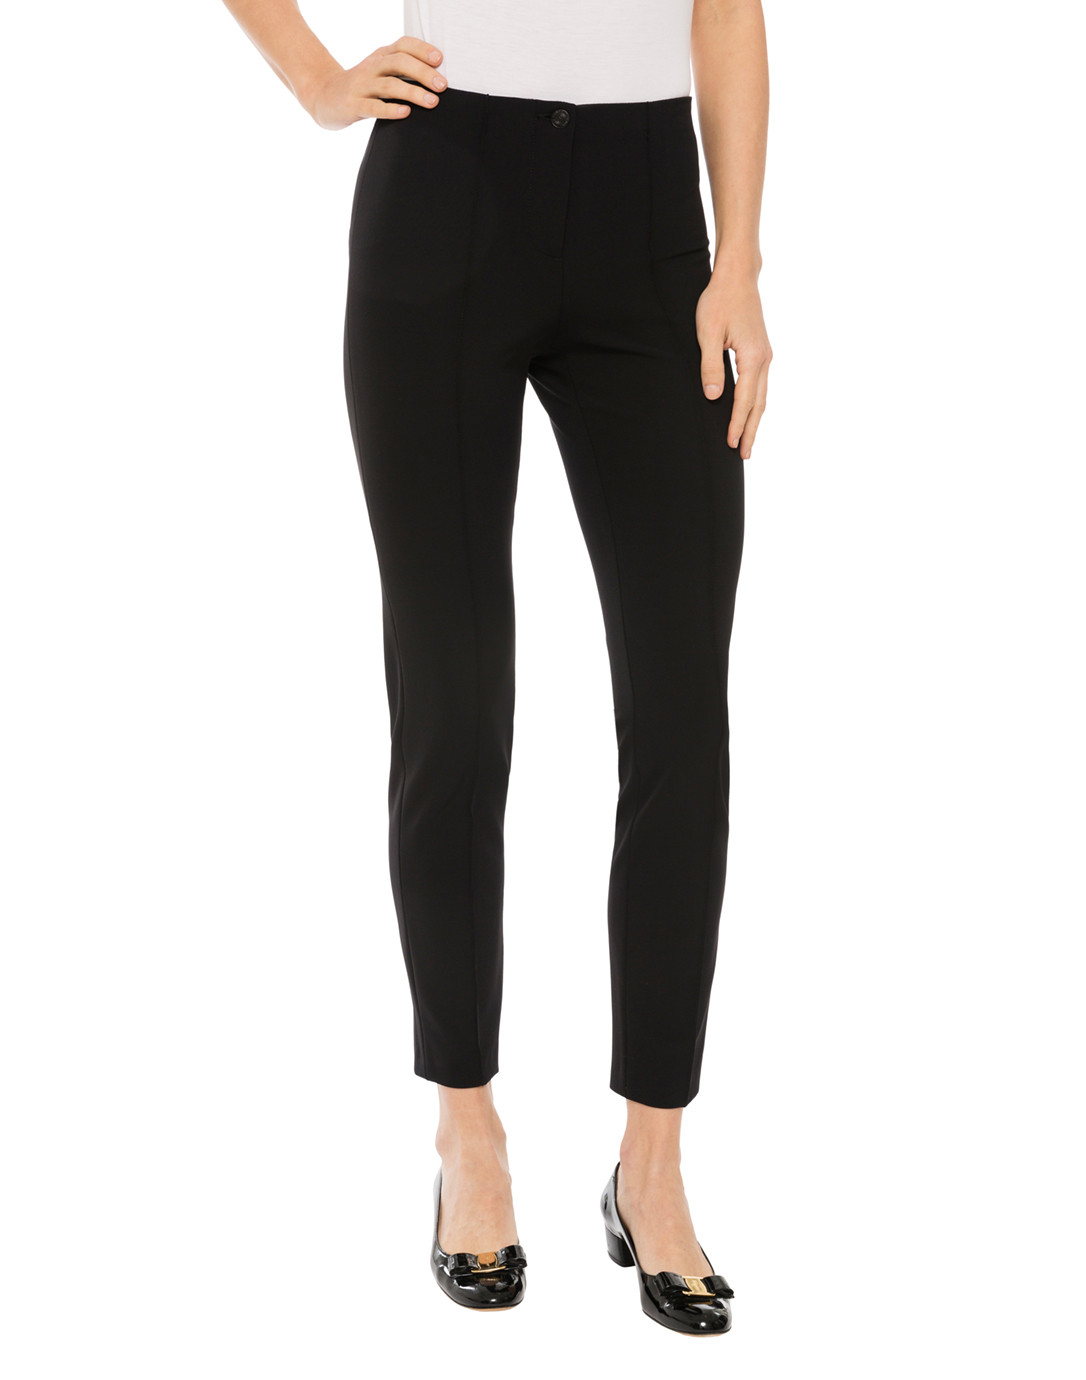 Cambio Ros Pants ros black techno stretch pant TOFRALZ